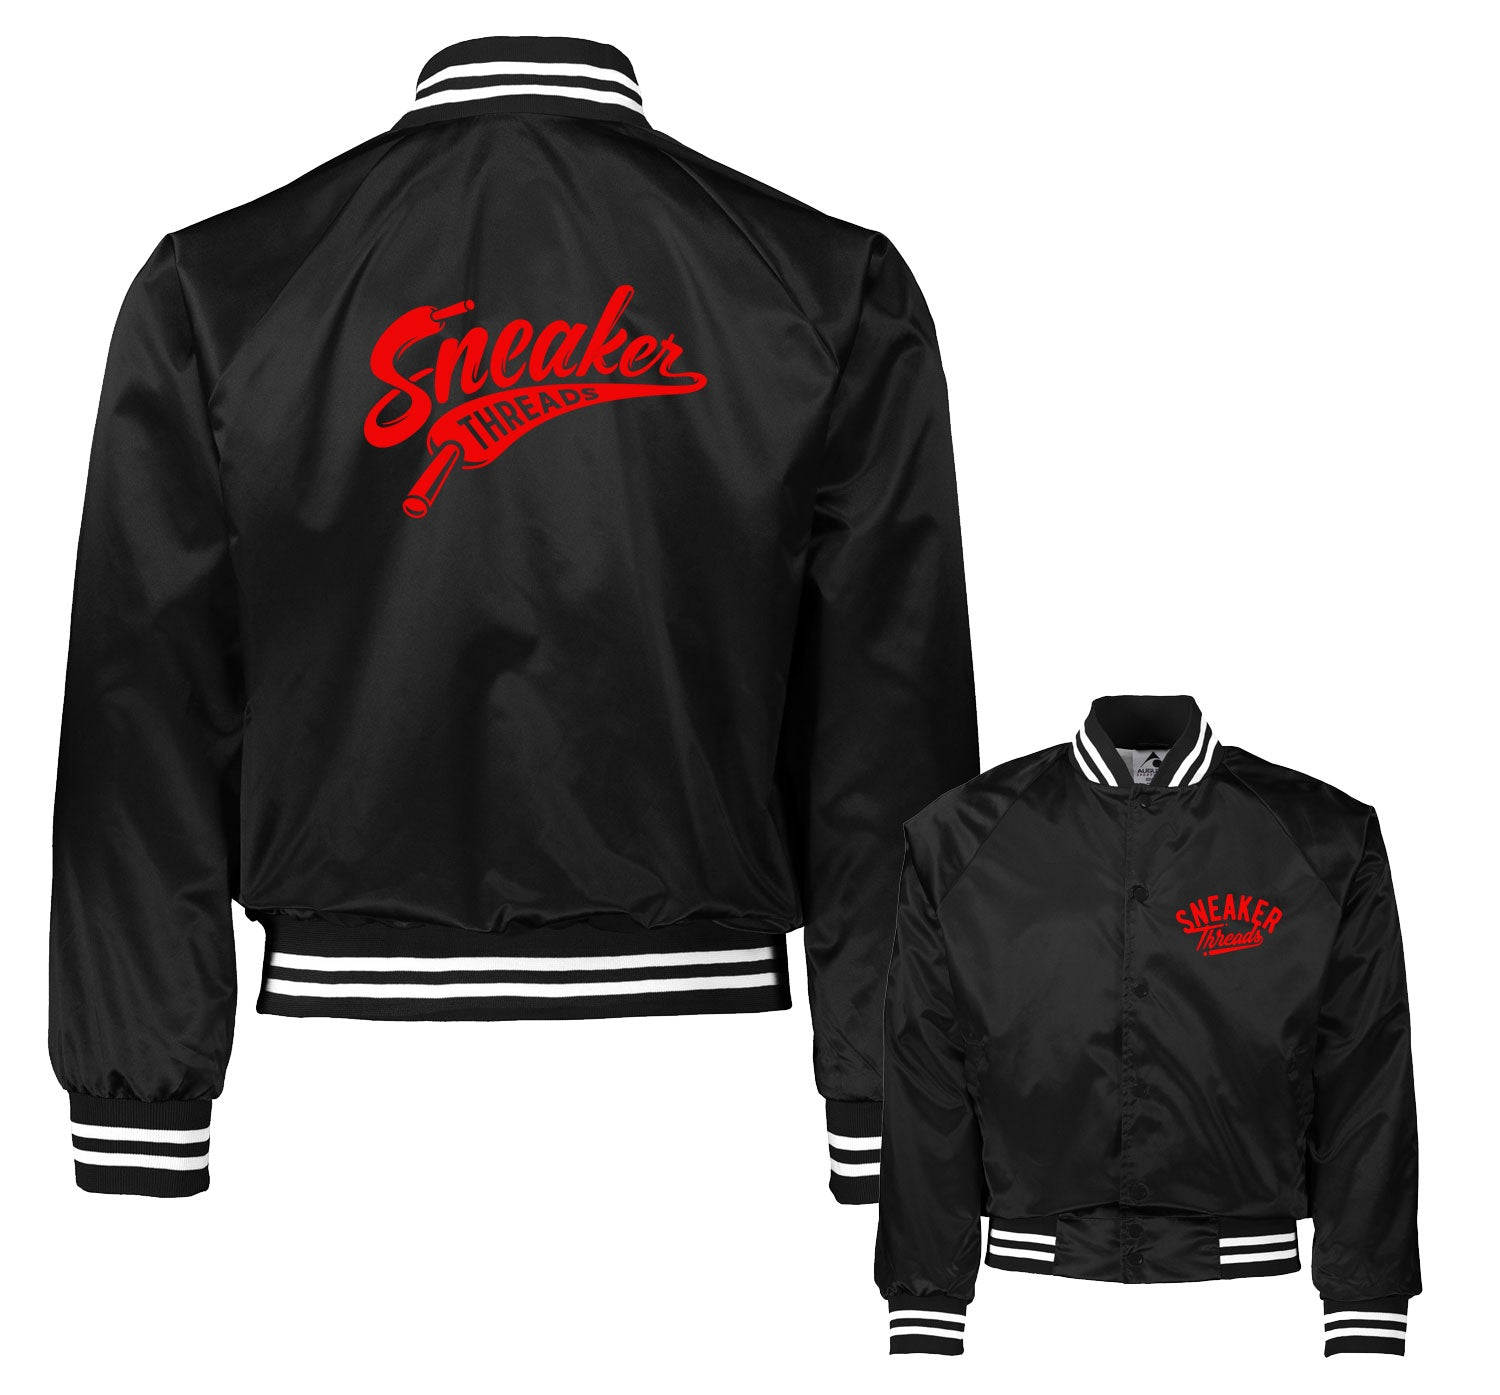 Jordan 11 Bred Jacket - ST Laces - Black